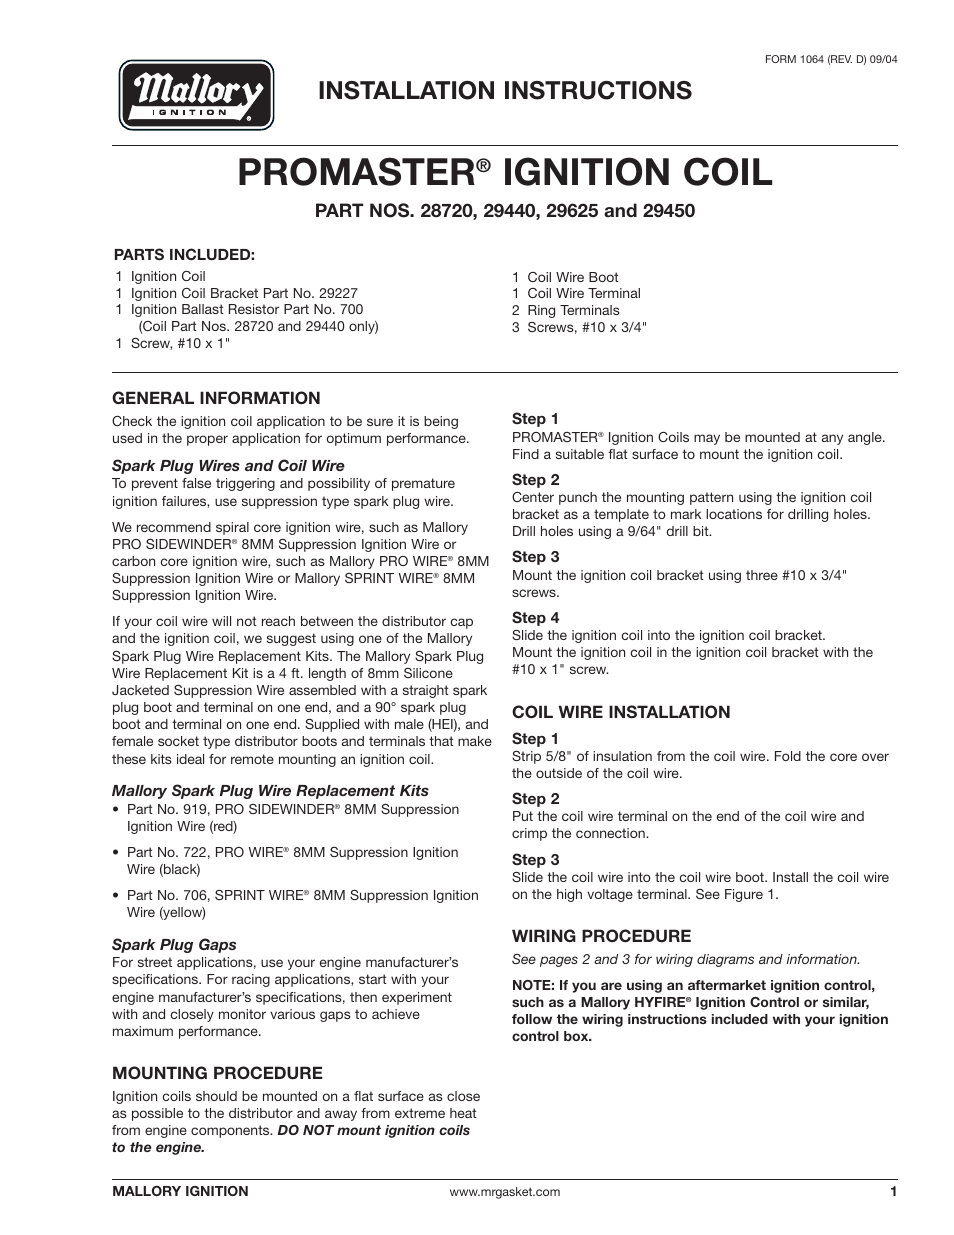 mallory ignition mallory promaster ignition coil 29440_29450_29625_29450 page1?resize\\\\\\\\\\\\\\\\\\\\\\\=665%2C861 accel points eliminator wiring diagram mallory ignition wiring accel points eliminator wiring diagram at honlapkeszites.co